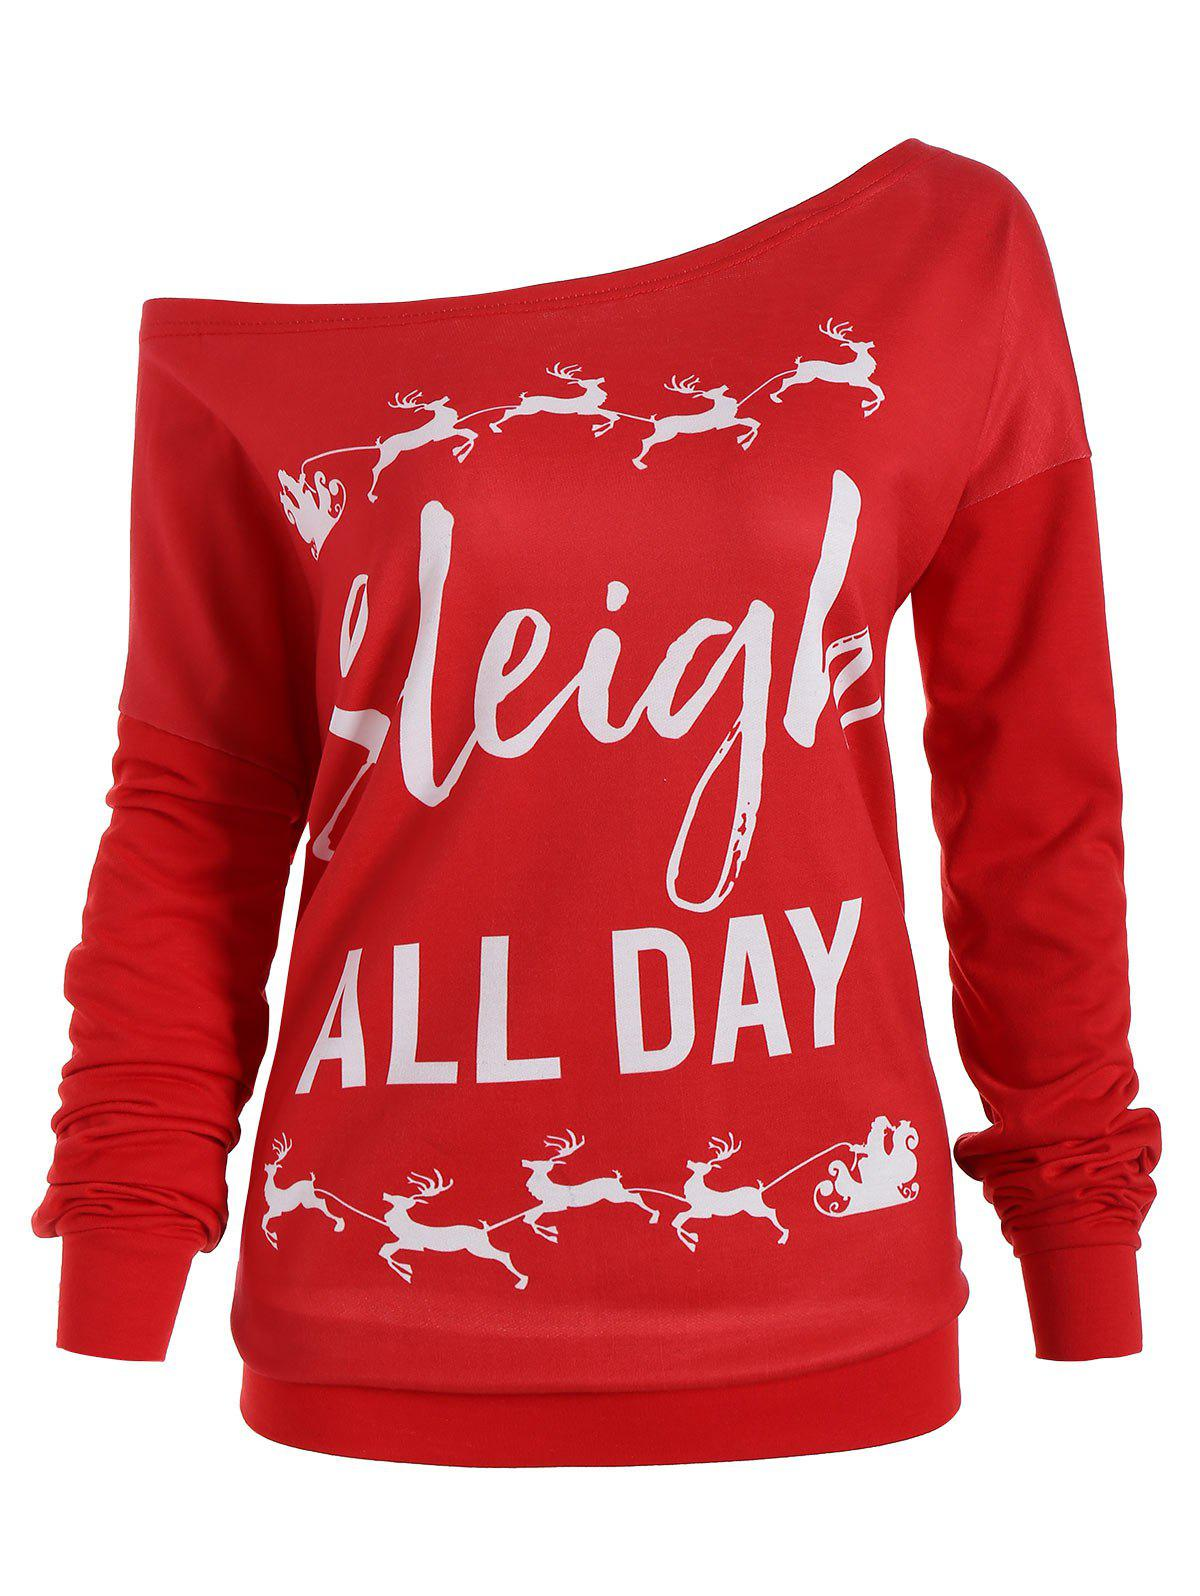 Christmas Elk Plus Size Sleigh All Day SweatshirtWOMEN<br><br>Size: XL; Color: RED; Material: Polyester,Spandex; Shirt Length: Regular; Sleeve Length: Full; Style: Fashion; Pattern Style: Letter; Season: Fall,Spring; Weight: 0.3700kg; Package Contents: 1 x Sweatshirt;